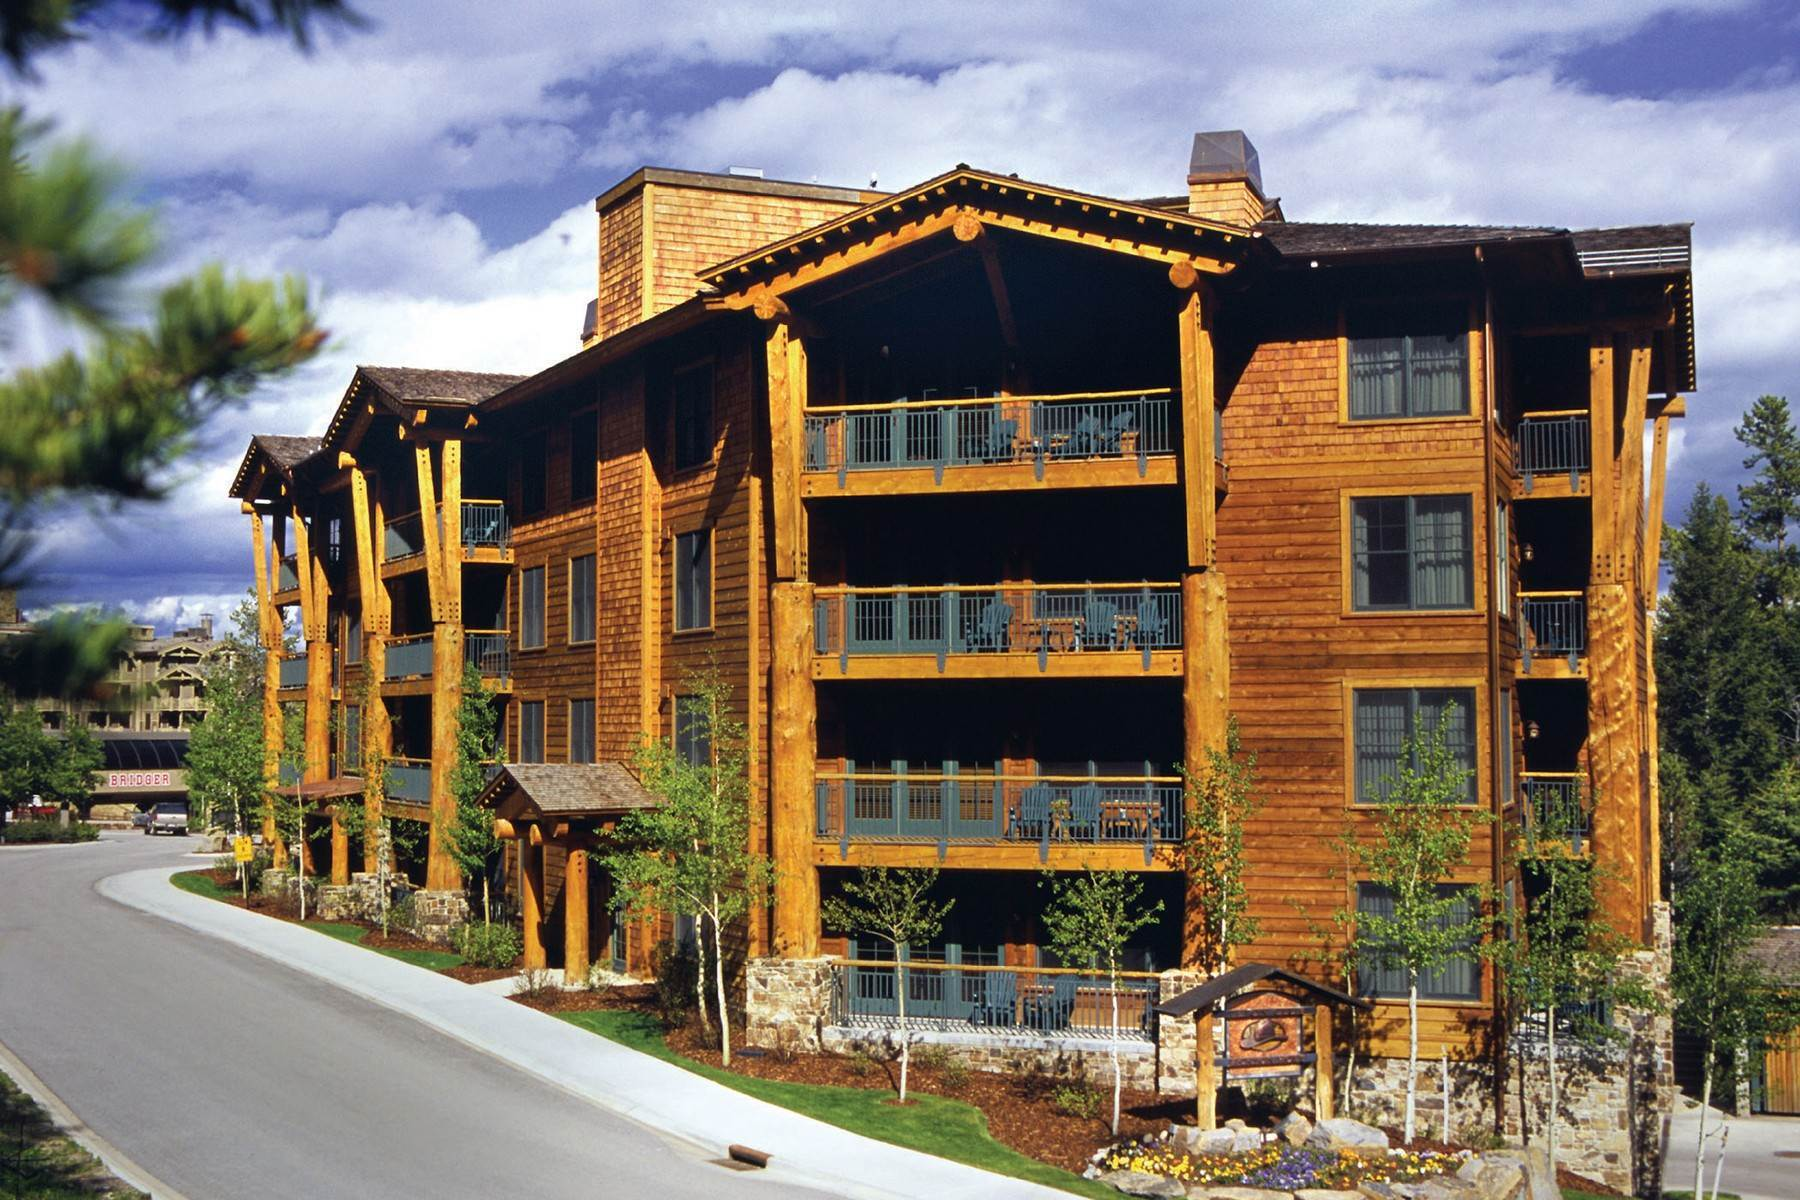 4. fractional ownership prop for Sale at Teton Club - Two Prime Summer Weeks 3340 W Cody Ln, #105 Teton Village, Wyoming 83025 United States